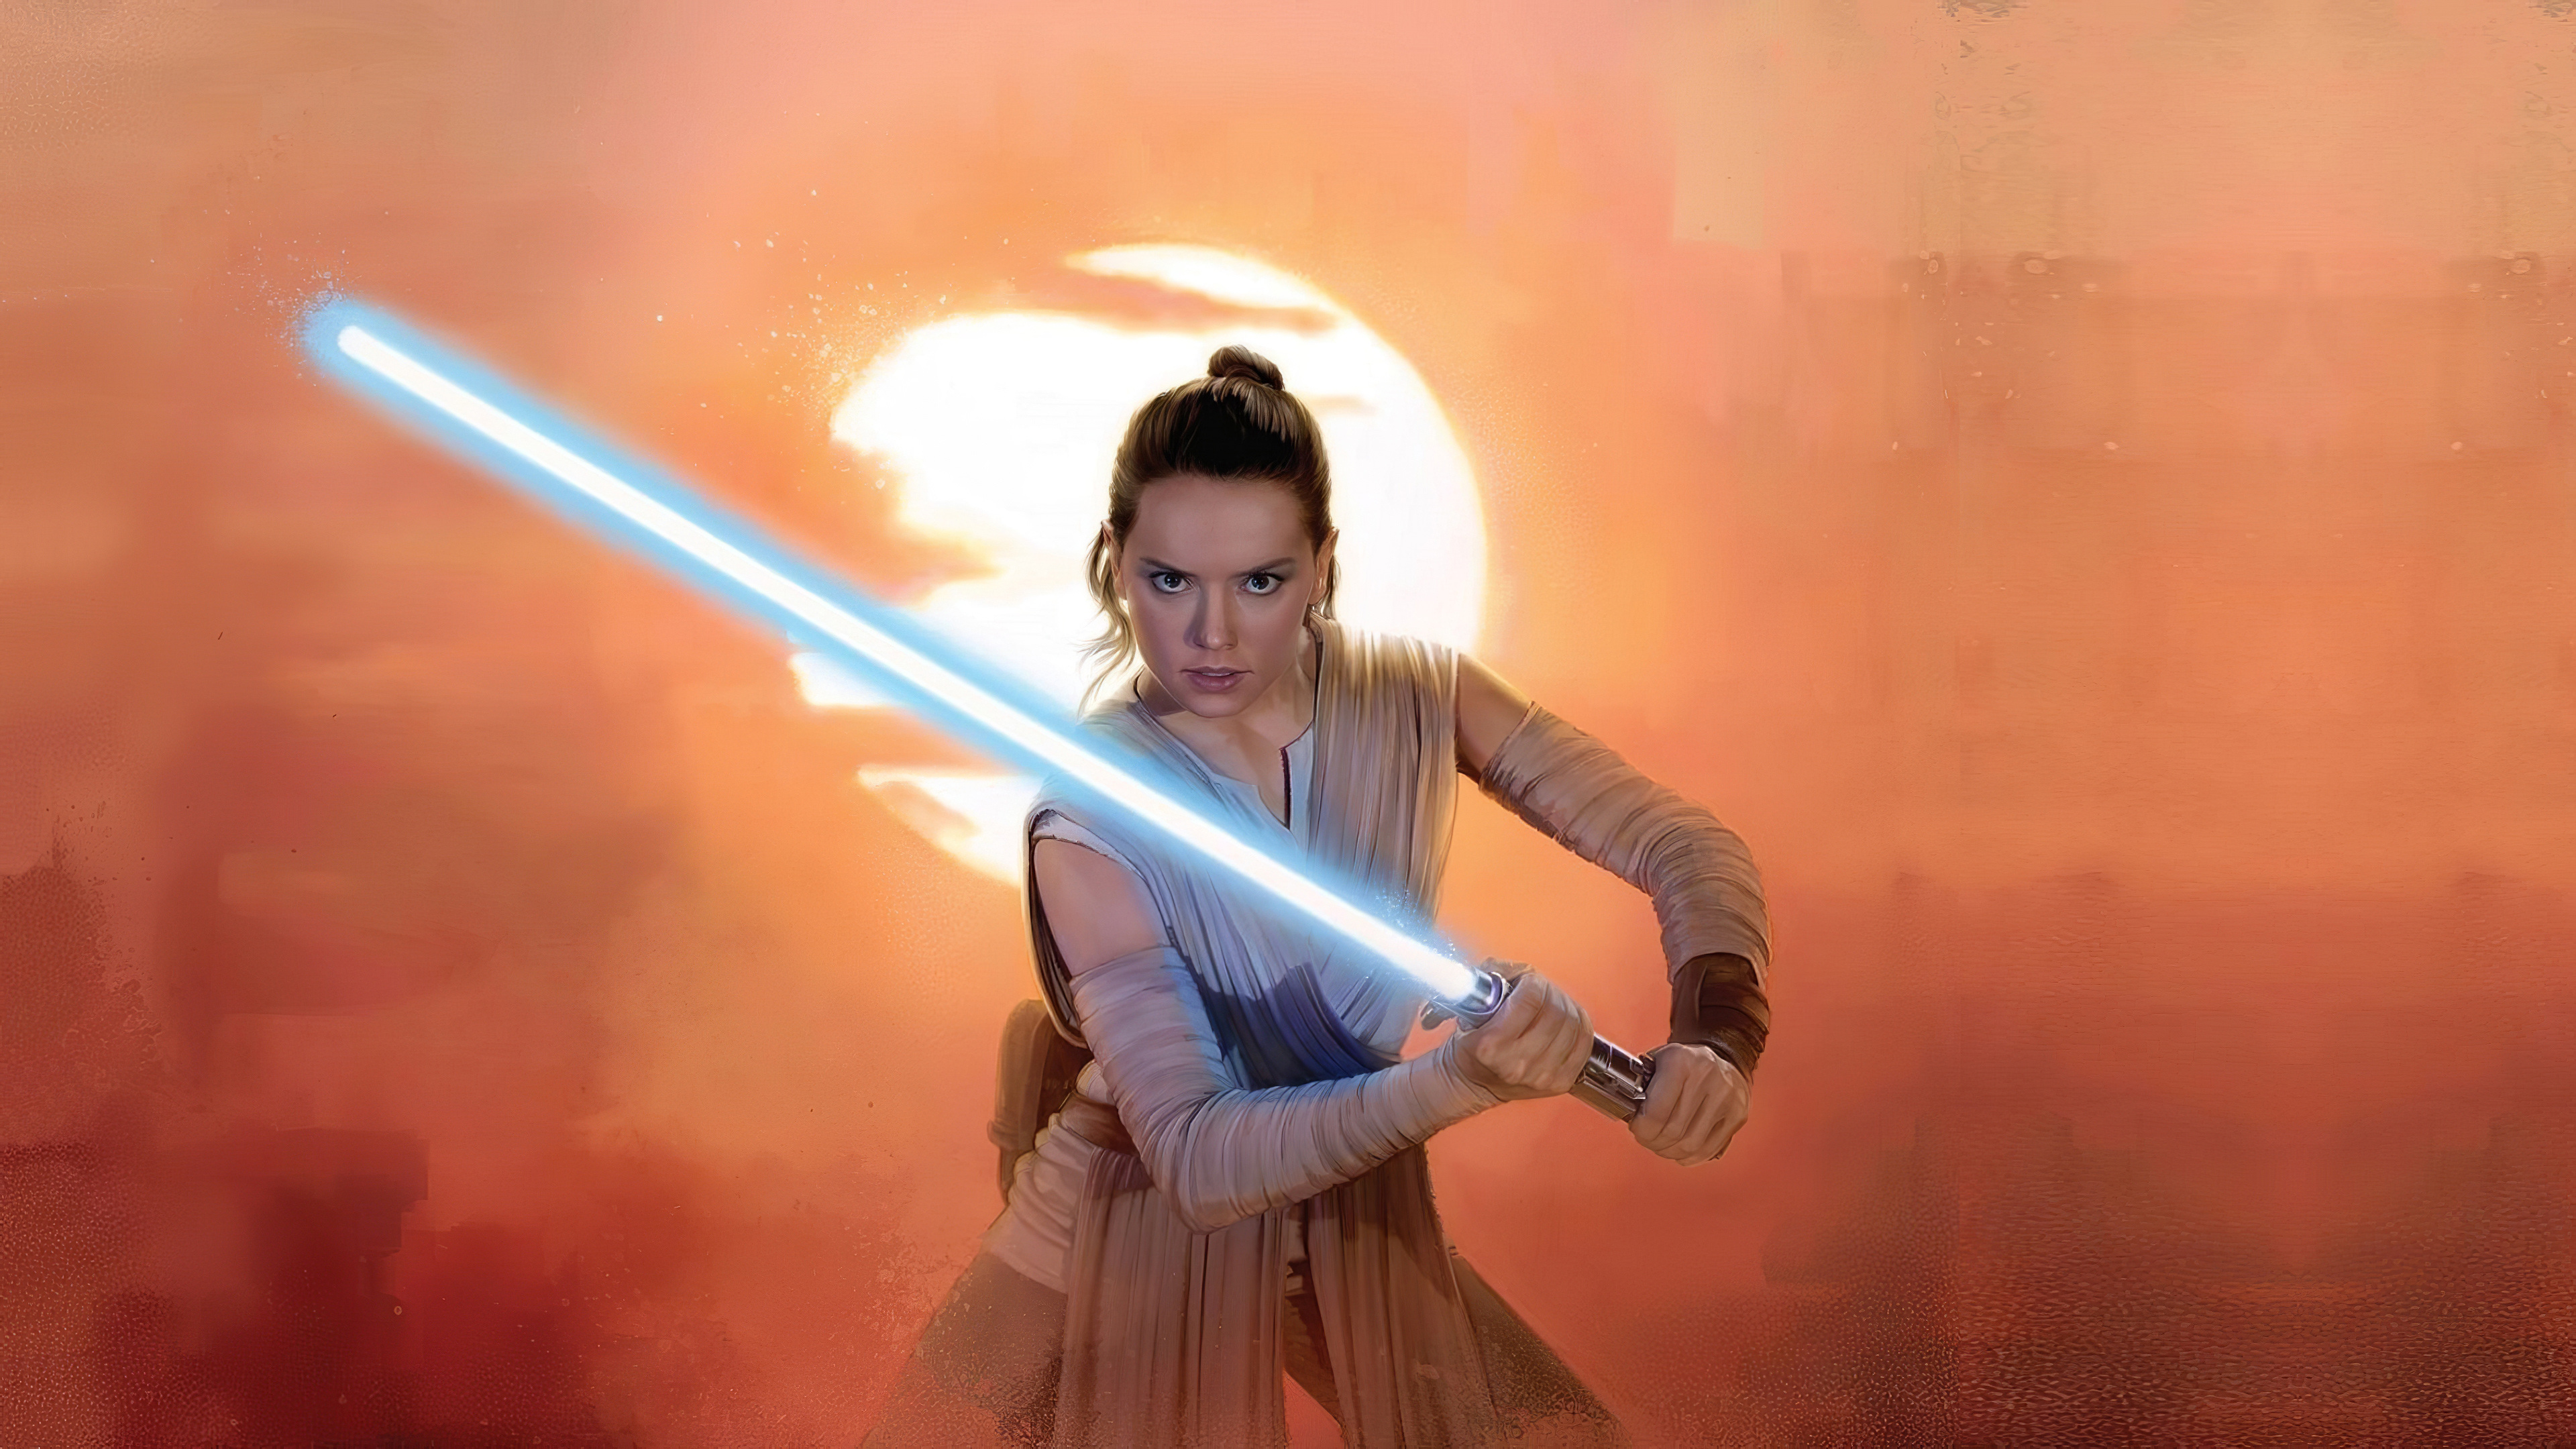 Wallpaper Rey with lightsaver from Star Wars The rise of the skywalker